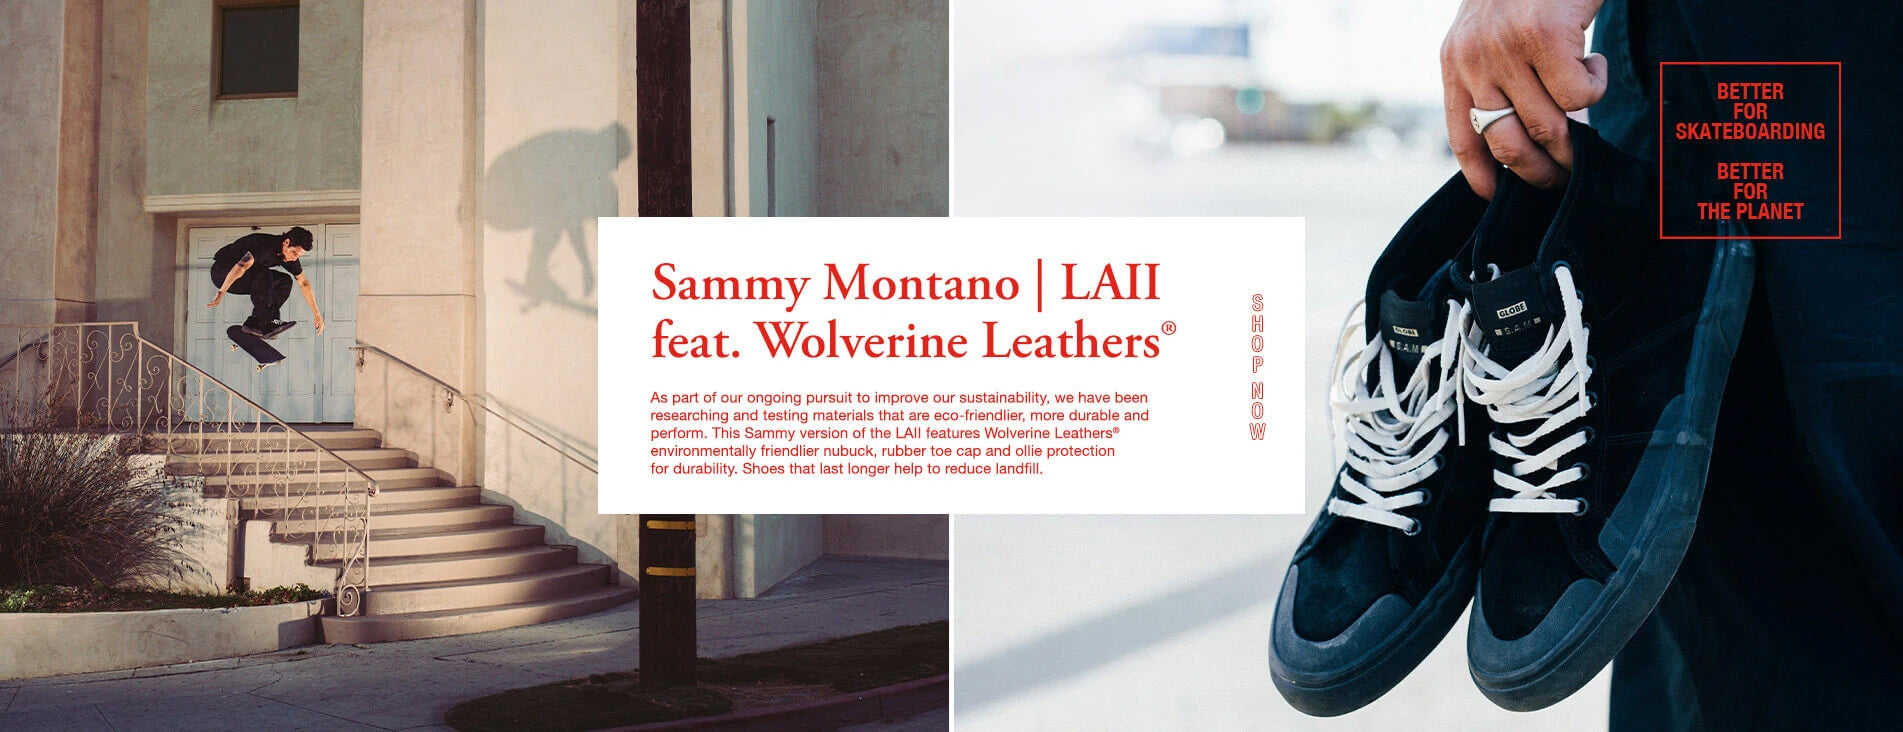 Globe Sammy Montano | Los Angered II Featuring Wolverine Leathers®